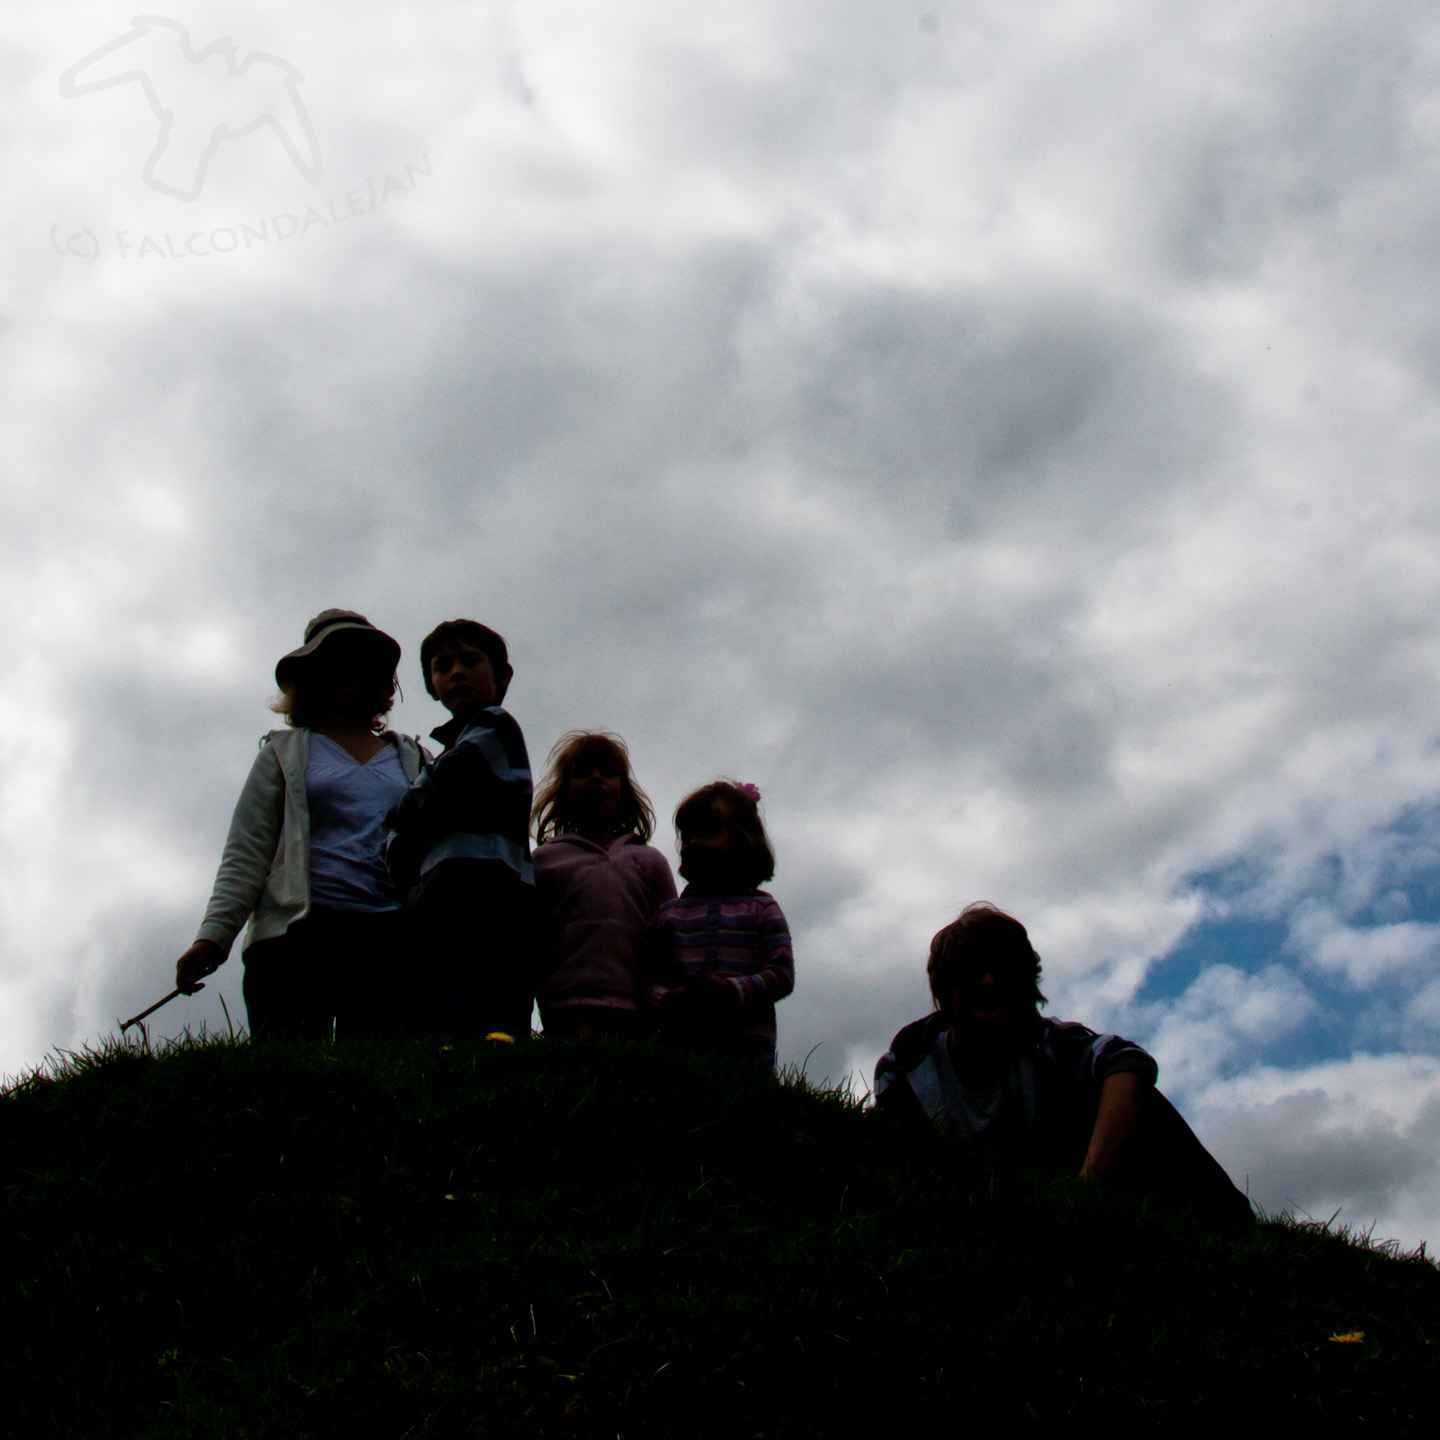 Ideas and tips for a vacation that's suitable for sensitive people. Where could we take an anxious teenager or child on holiday? Plan calmer family travel. Image description: Silhouette of large family group on a hill with clouds.